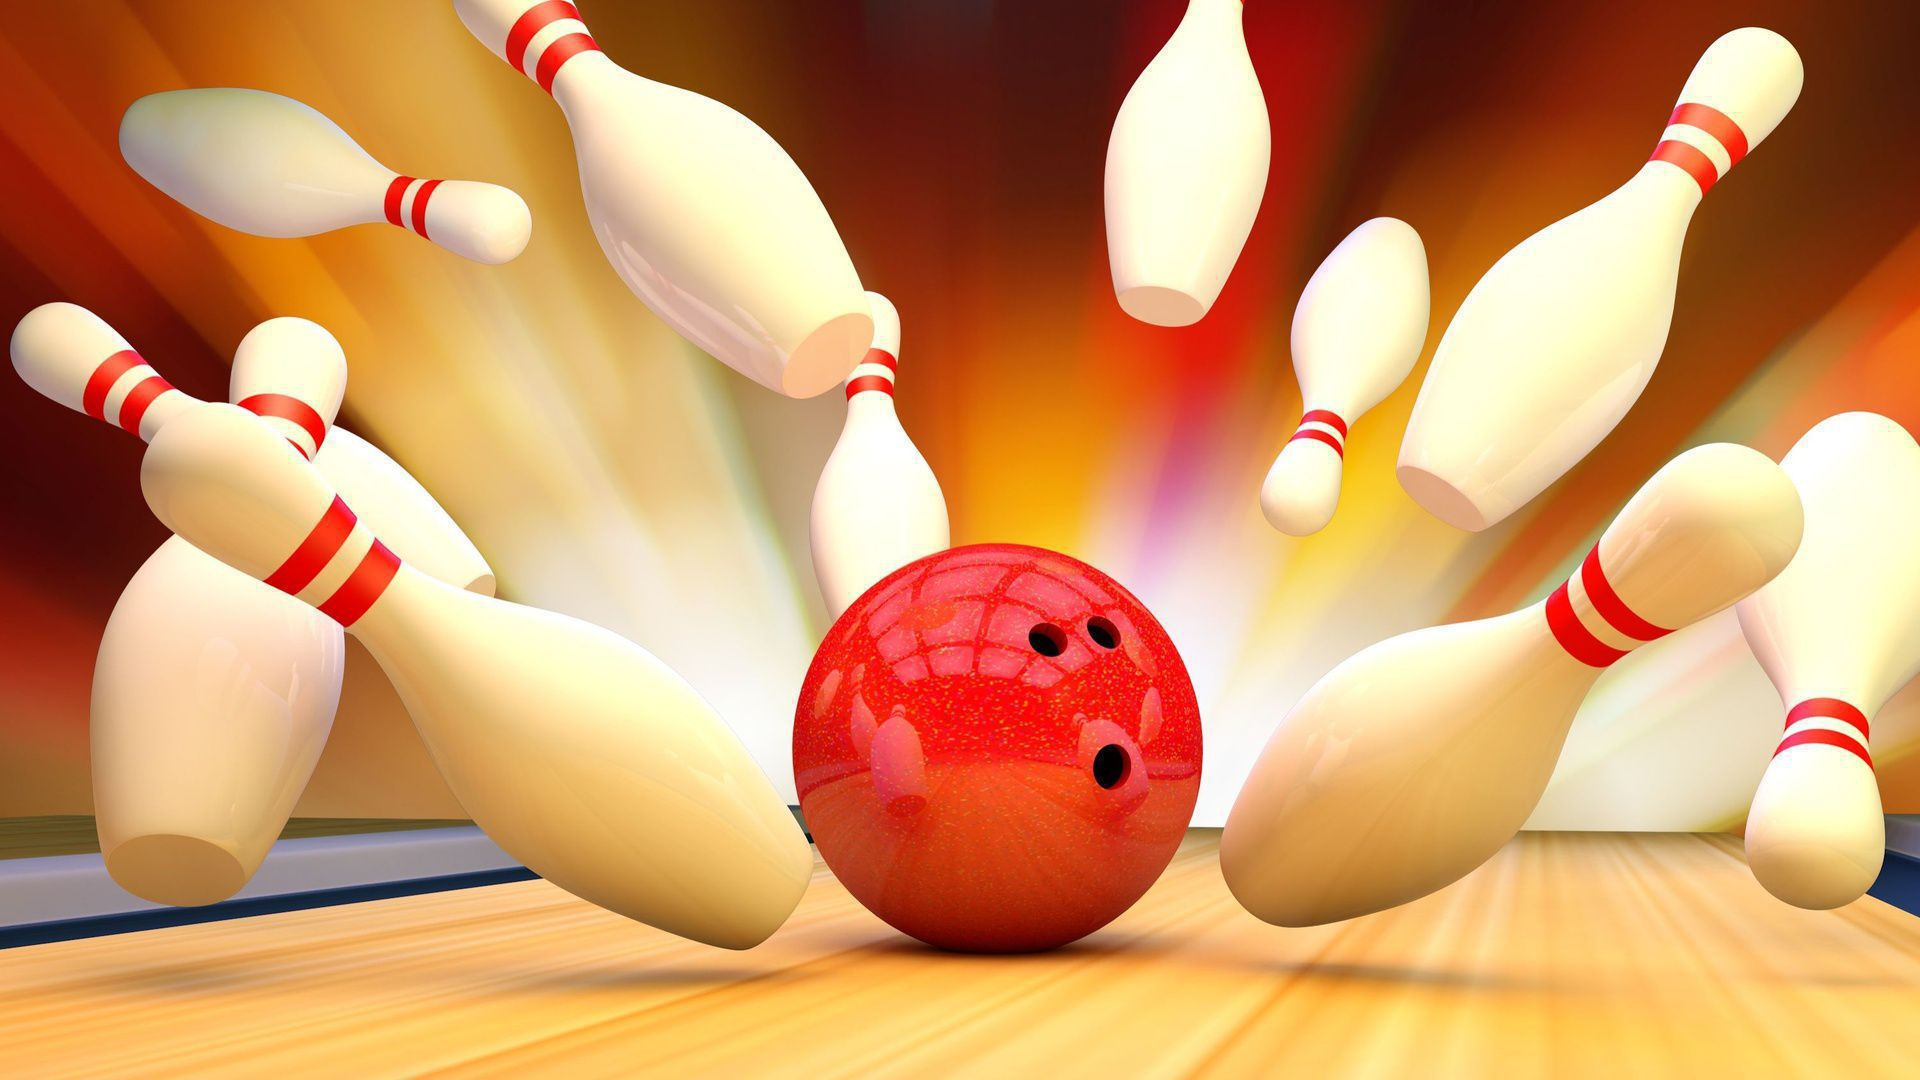 Bowling High Quality Wallpapers